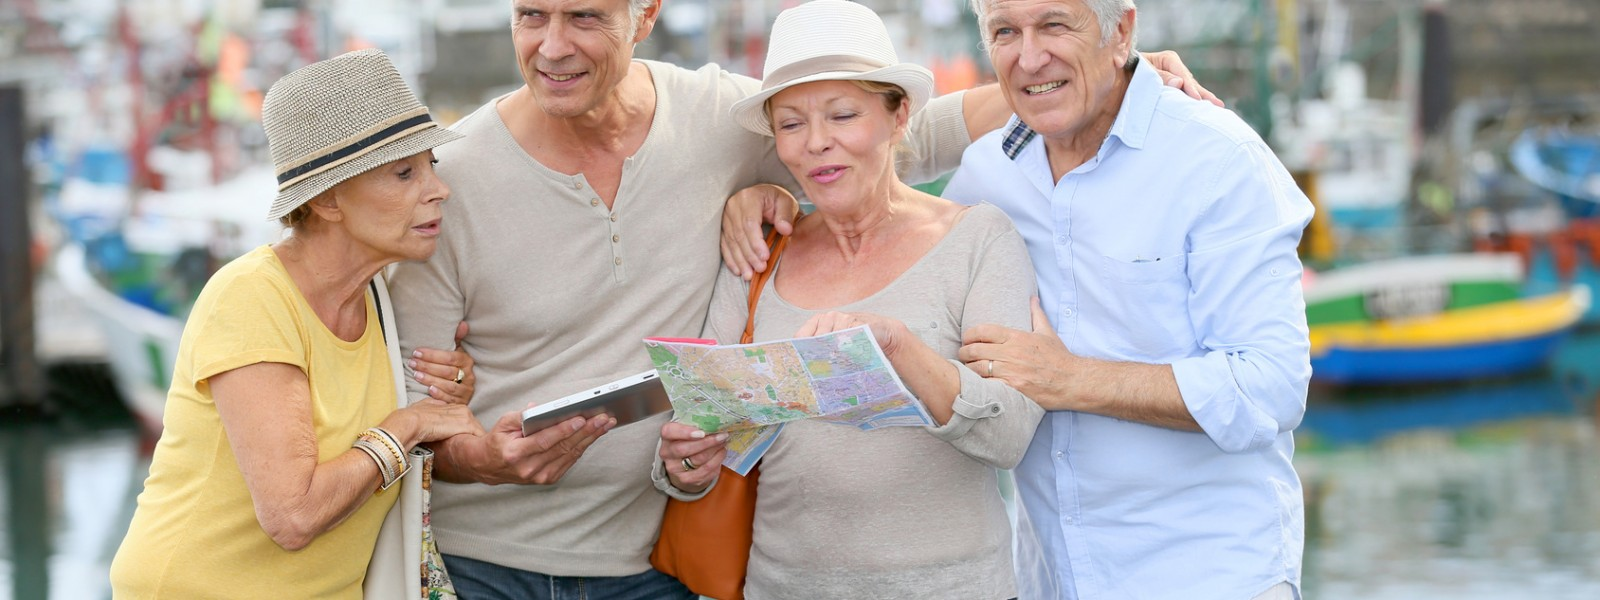 VOYAGES, SENIORS, RETRAITES, DECOUVERTES, EXCURSIONS